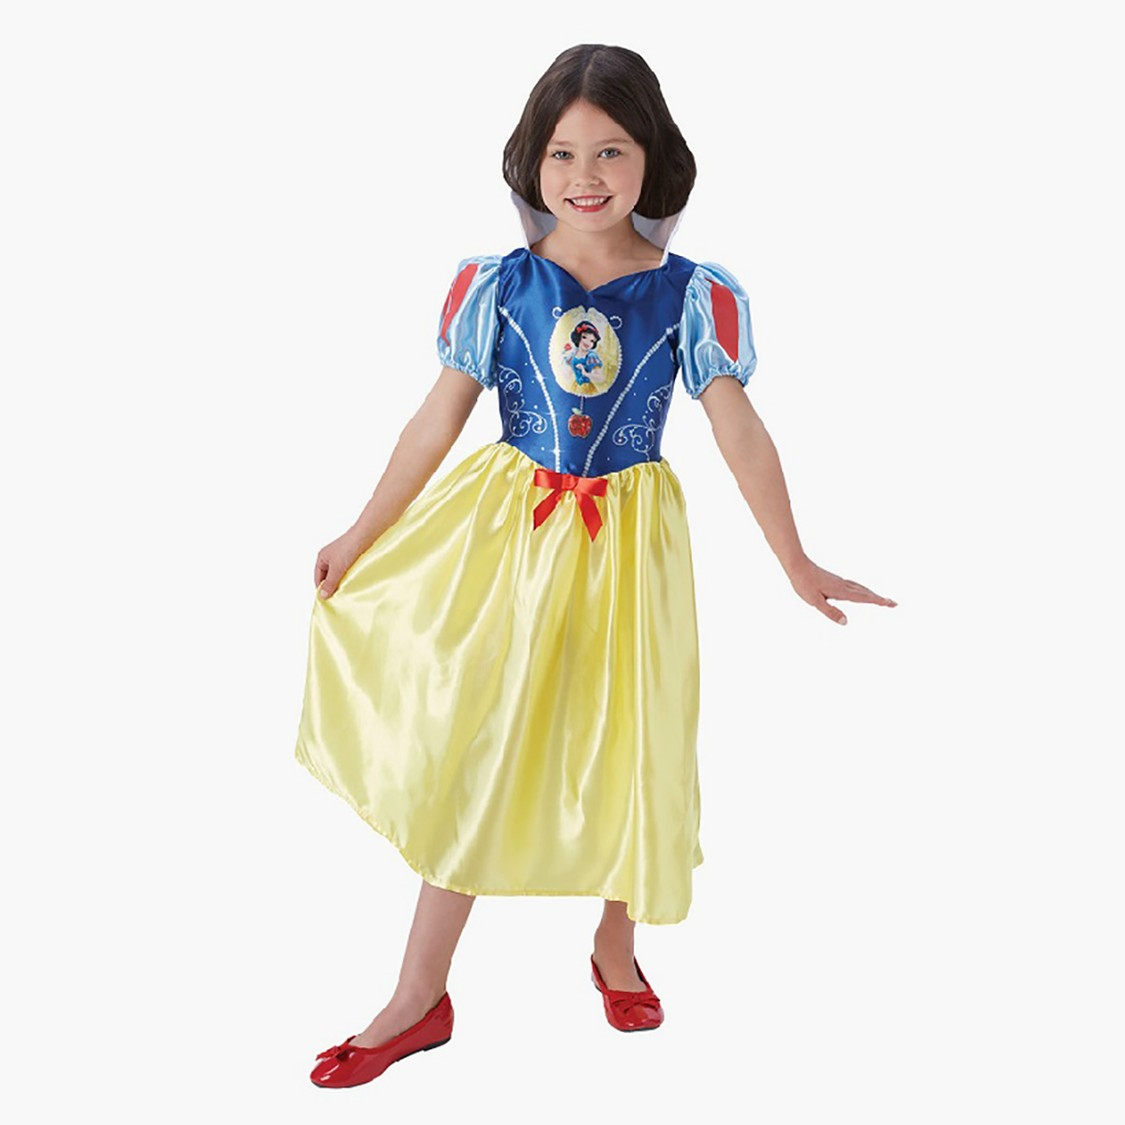 Snow White Costume Dress with Puff Sleeves and Bow Detail